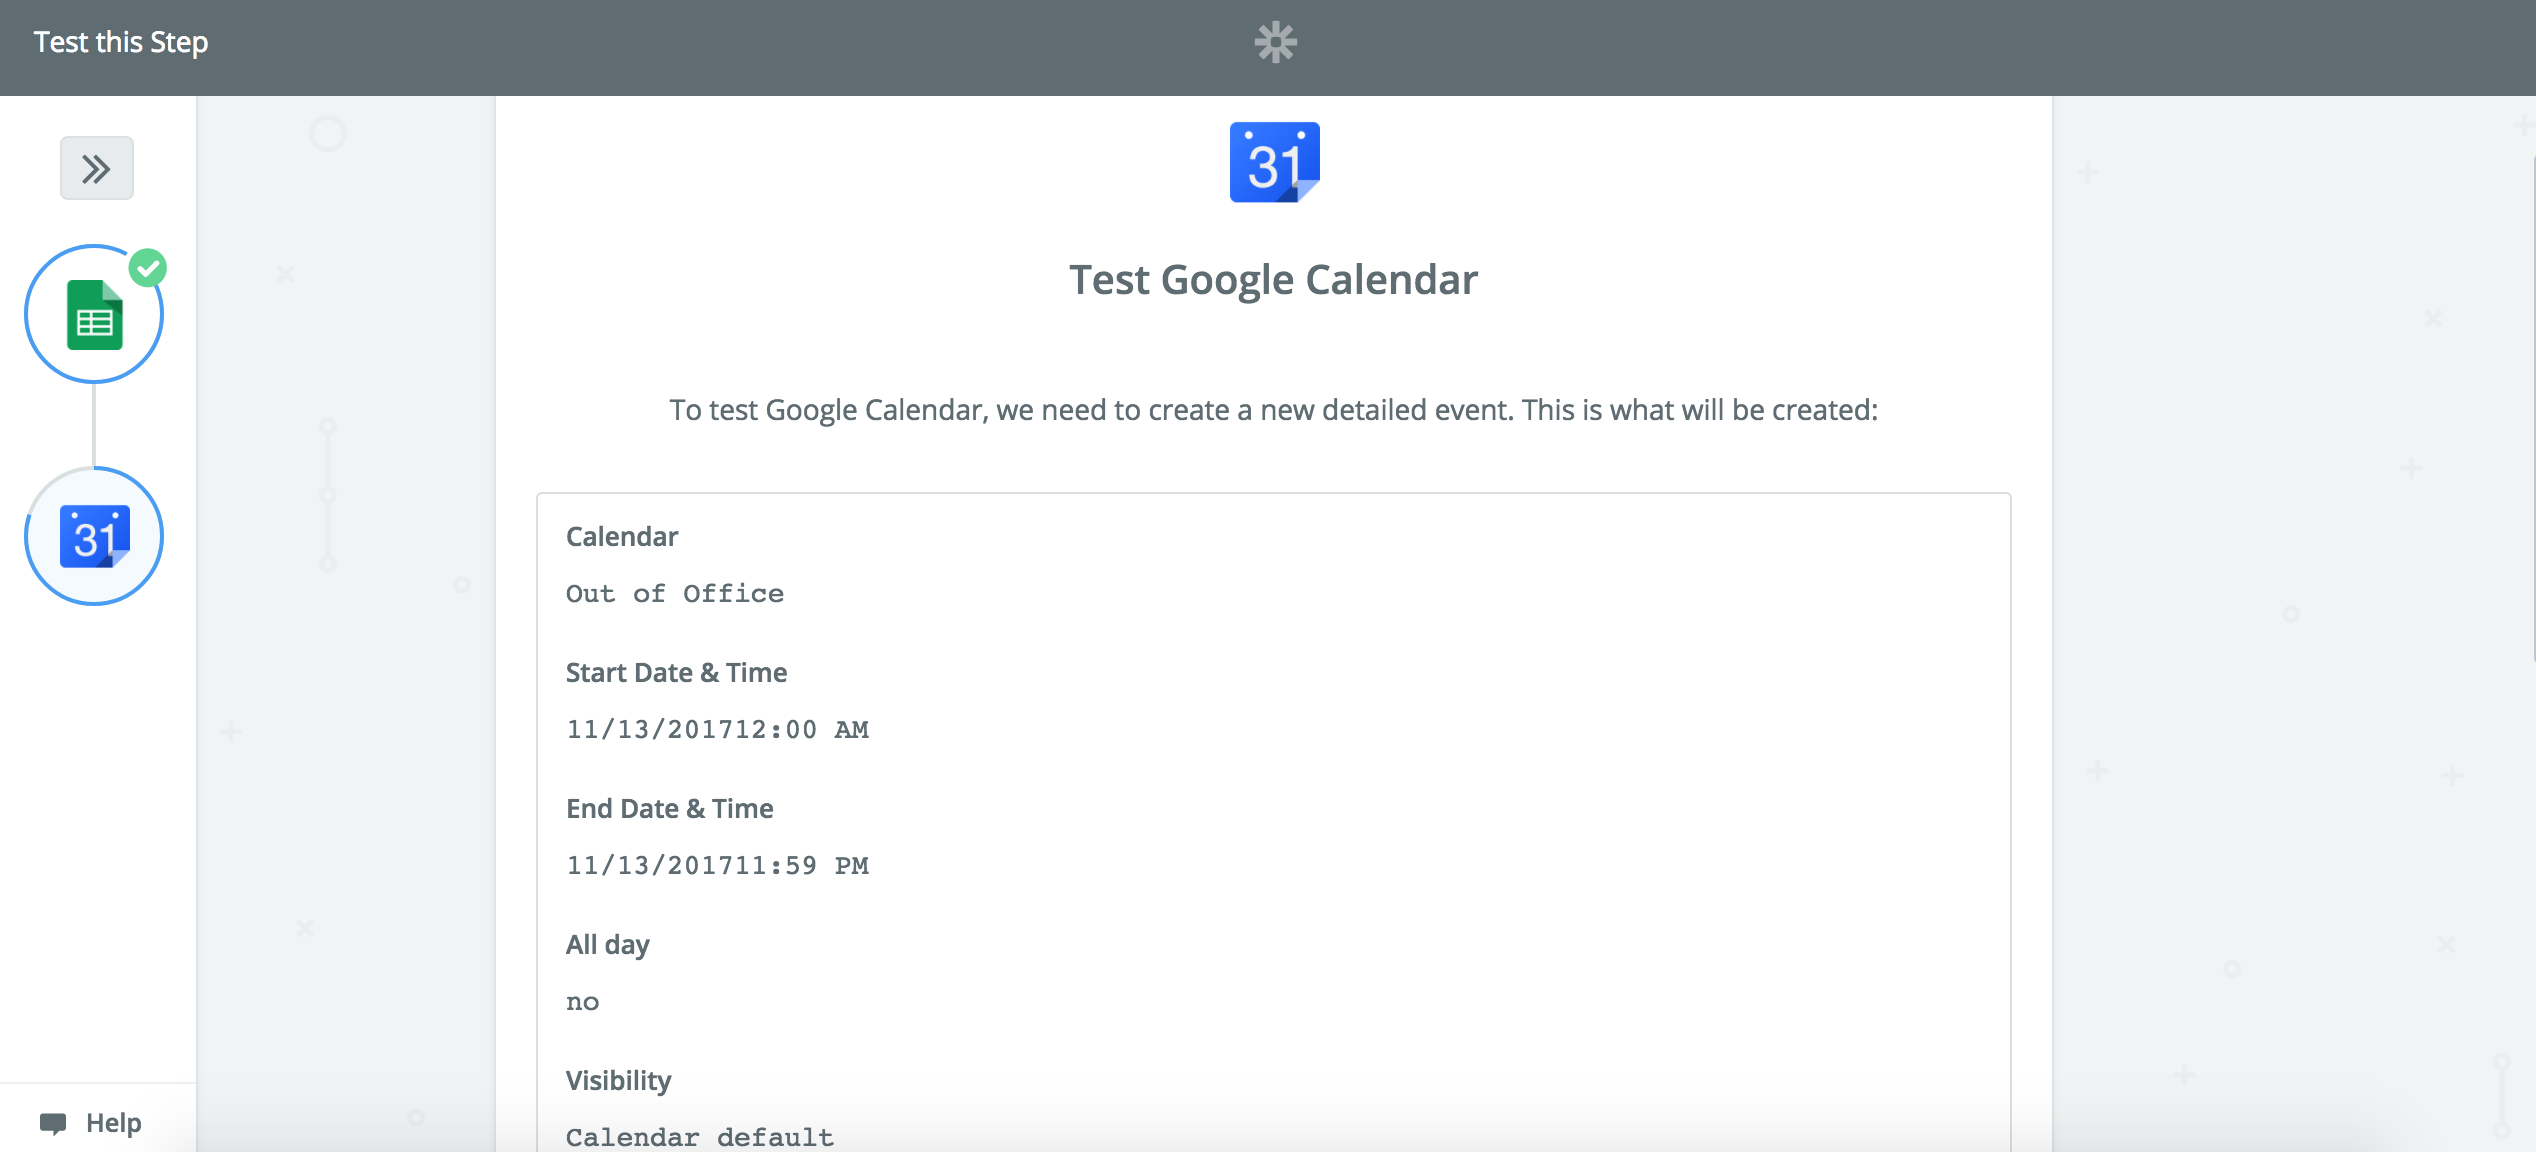 View the Google Calendar event information